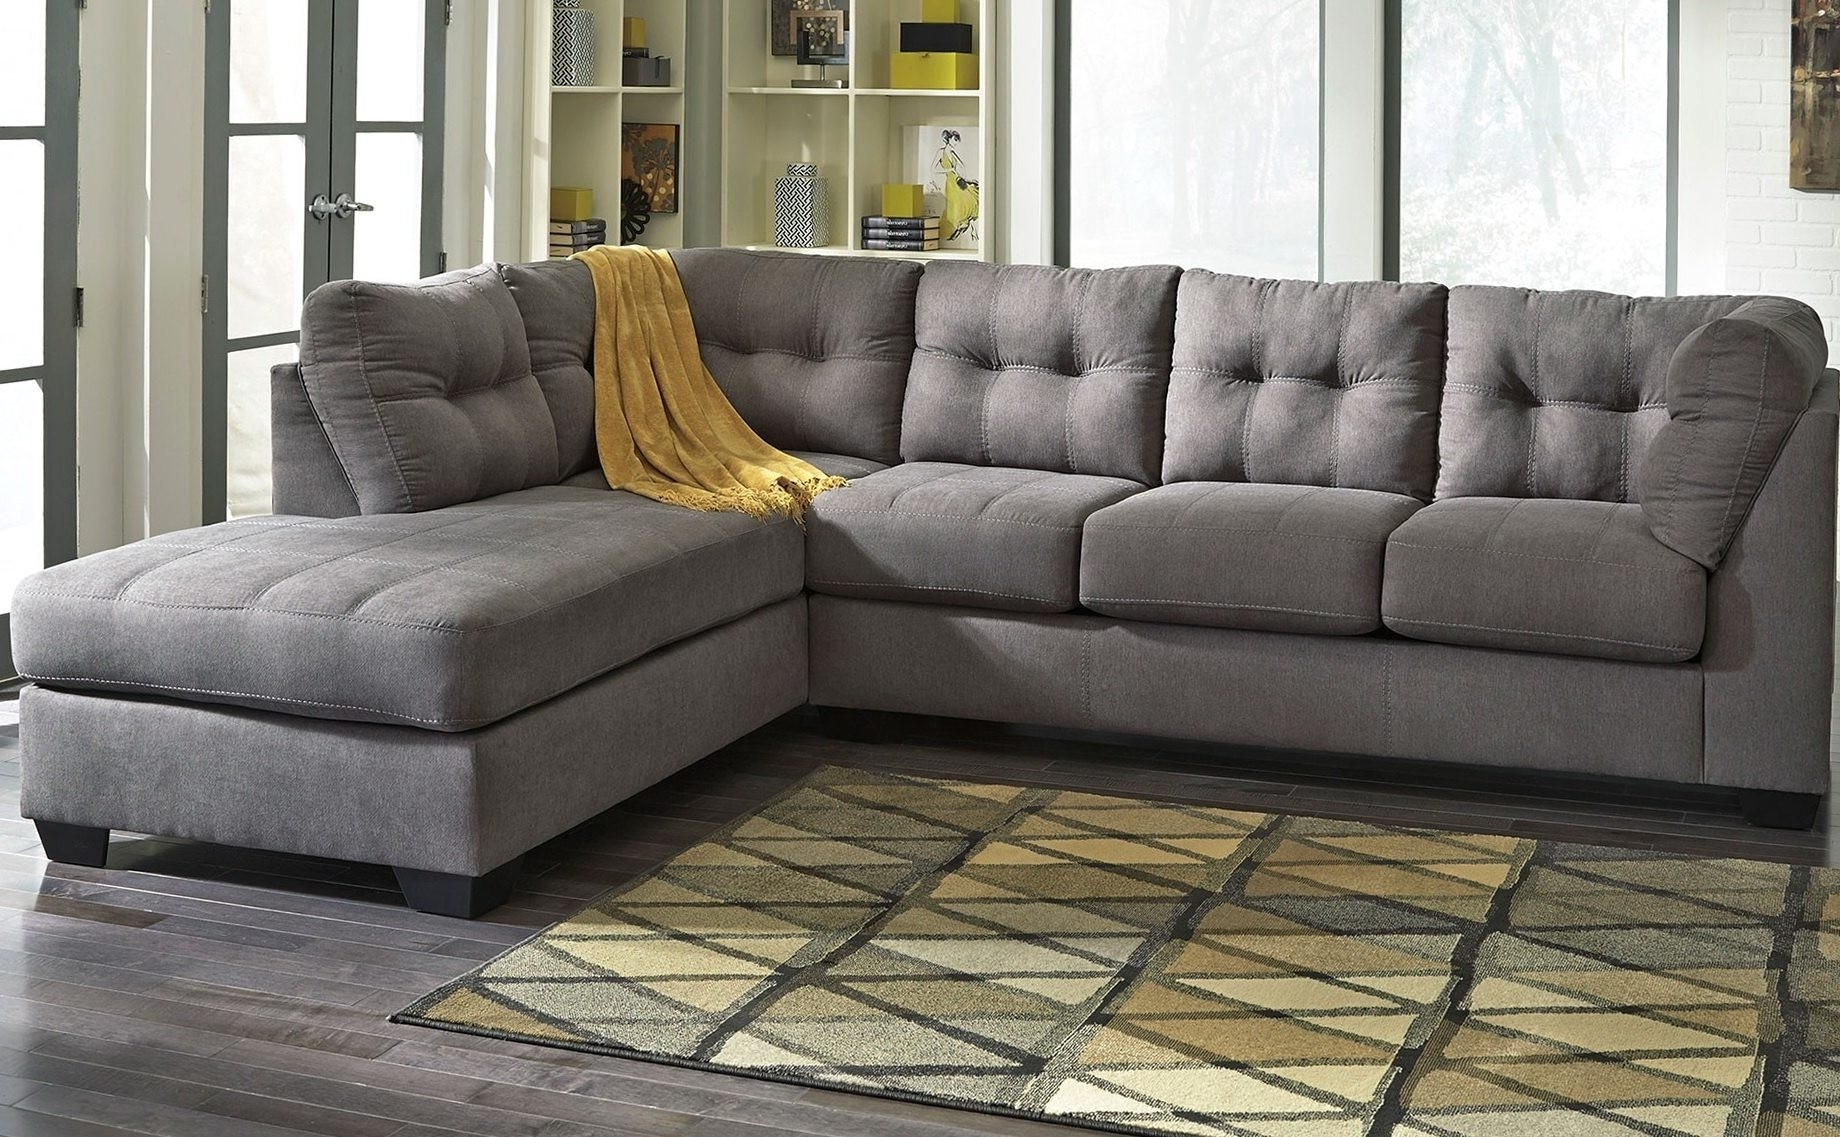 Well Known Sofa ~ Awesome Grey Corduroy Couch Sectional Sofas With Chaise Intended For Chaise Lounge Sectionals (View 12 of 15)